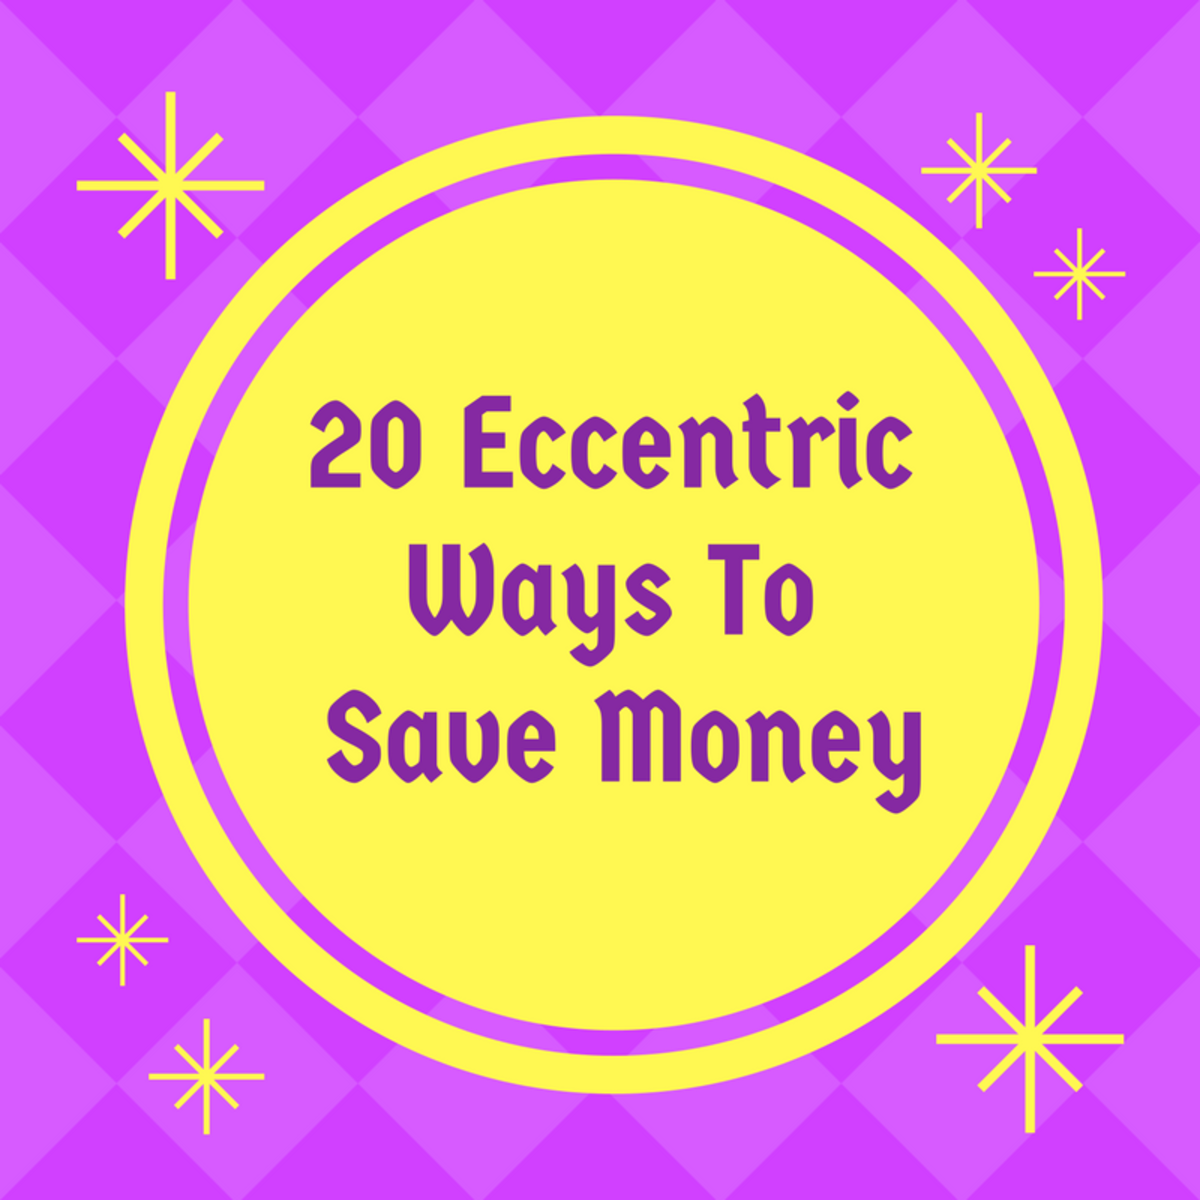 20 Eccentric Ways to Save Money!